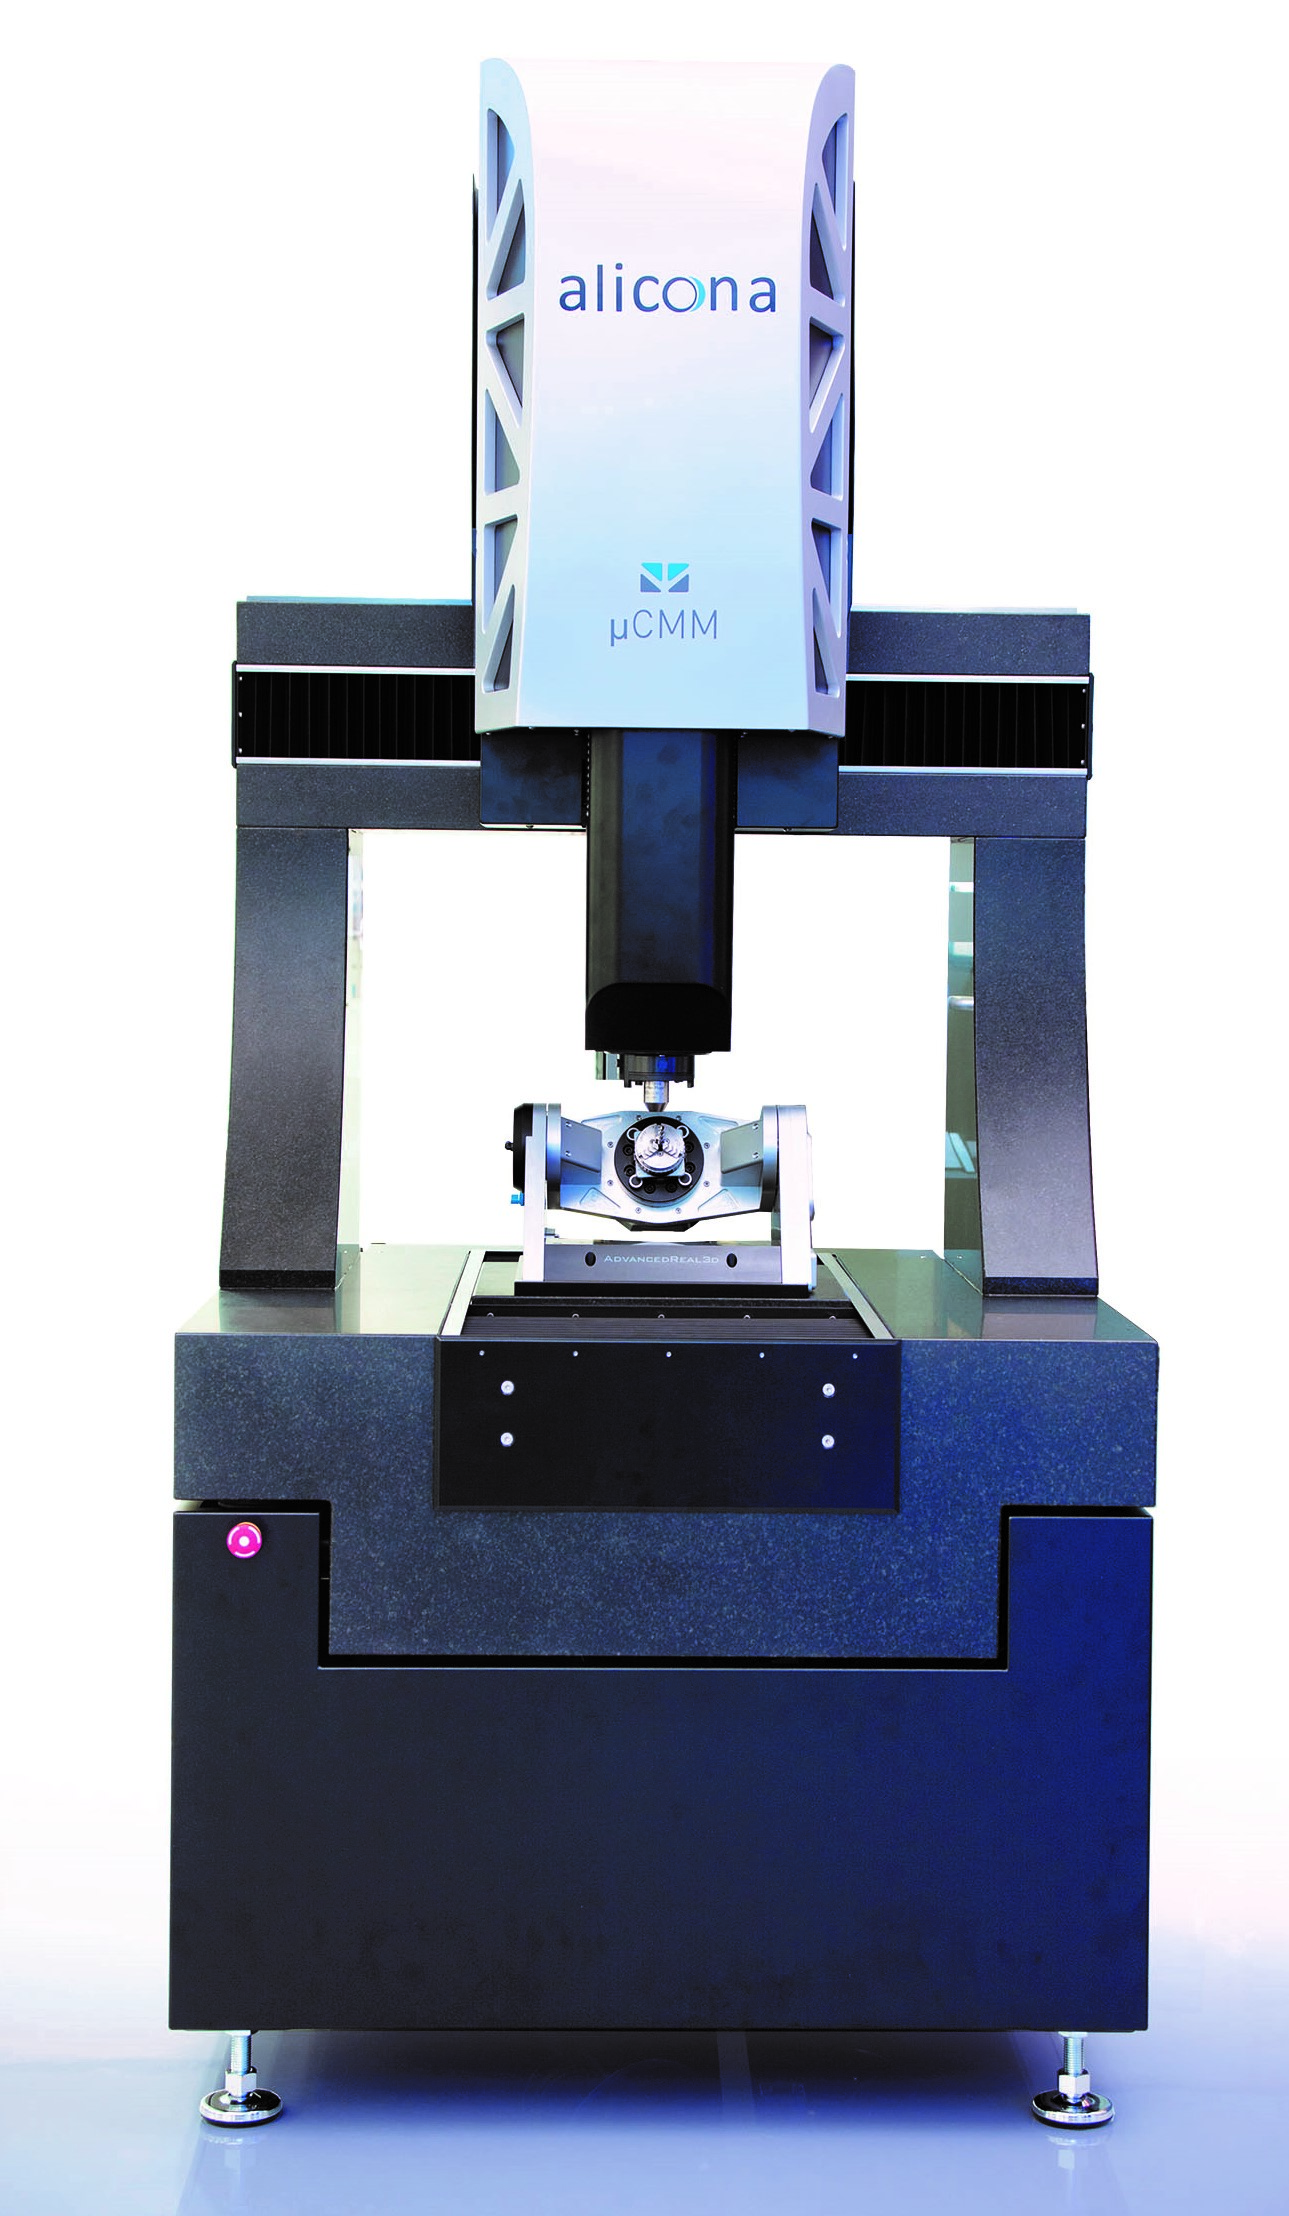 The Alicona 5 axis  µCMM